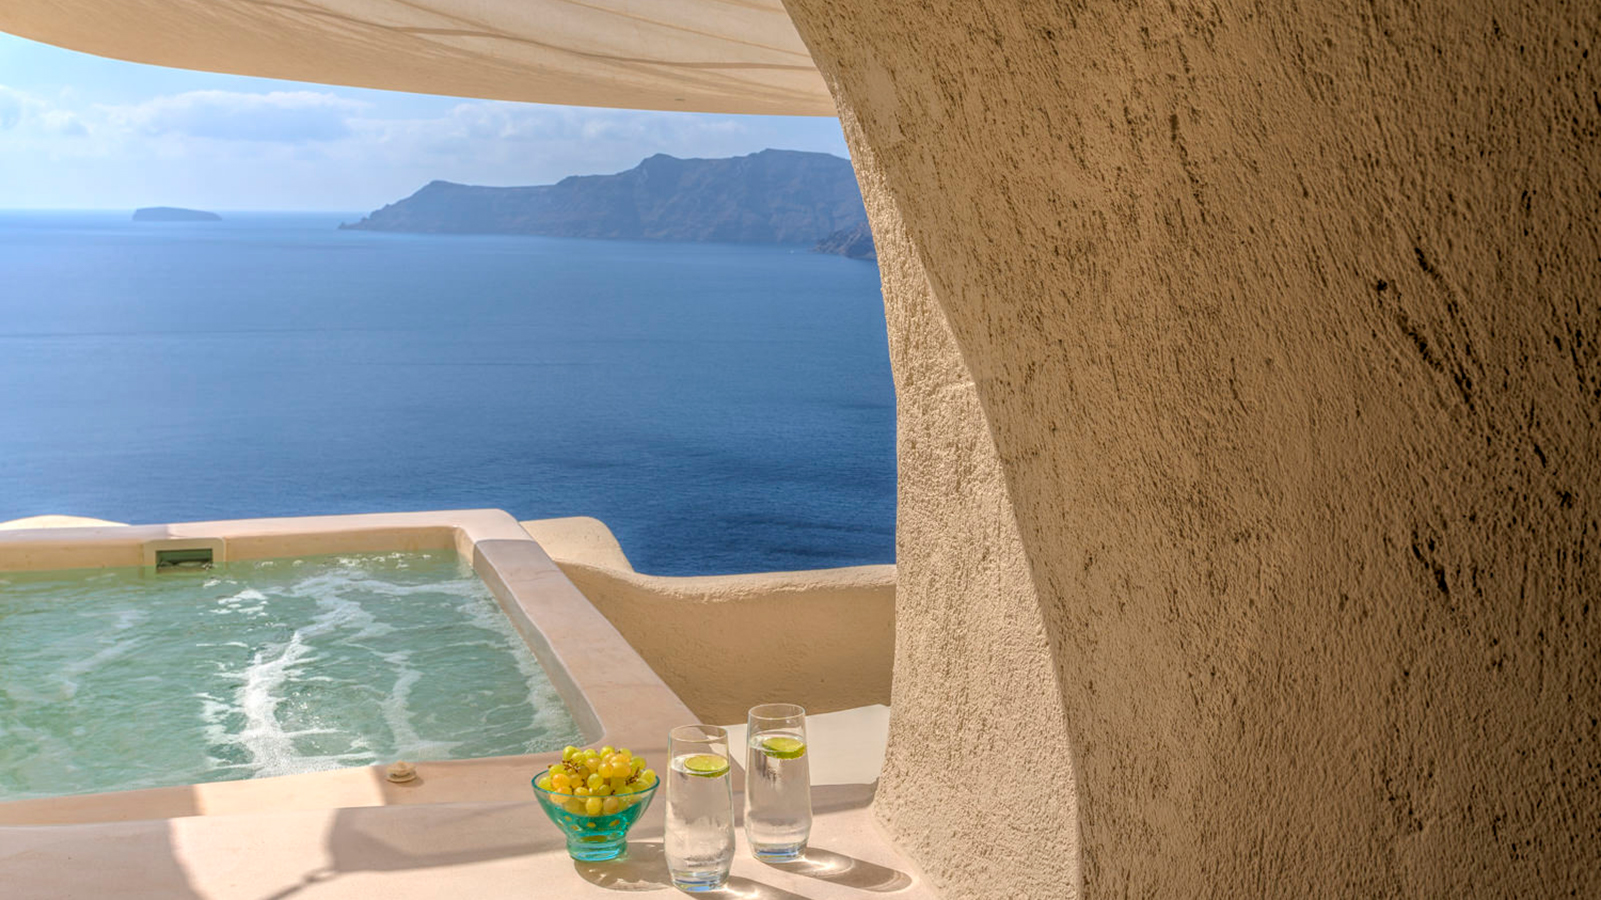 10 hotel bathtubs with jaw-dropping views | CNN Travel